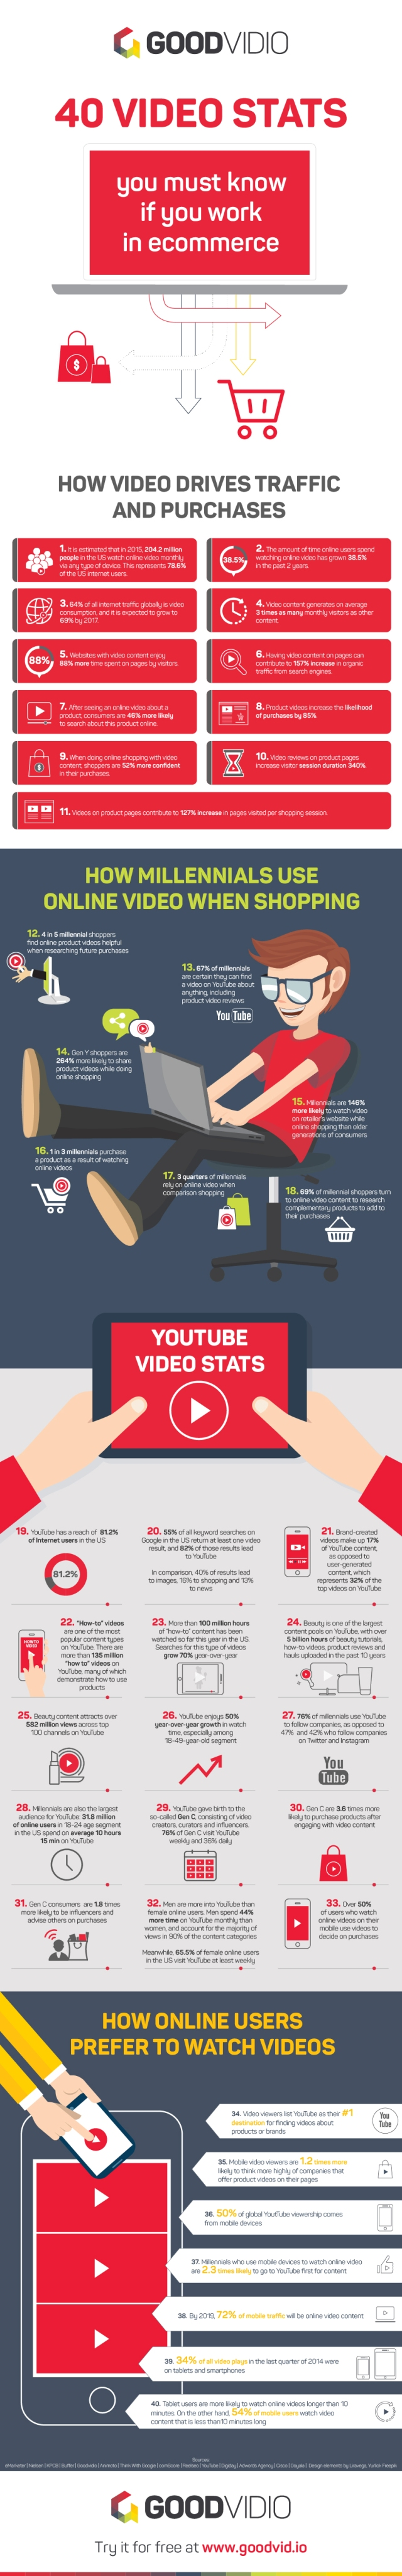 infographic-40-ecommerce-video-stats-you-must-know-if-you-work-in-online-retail